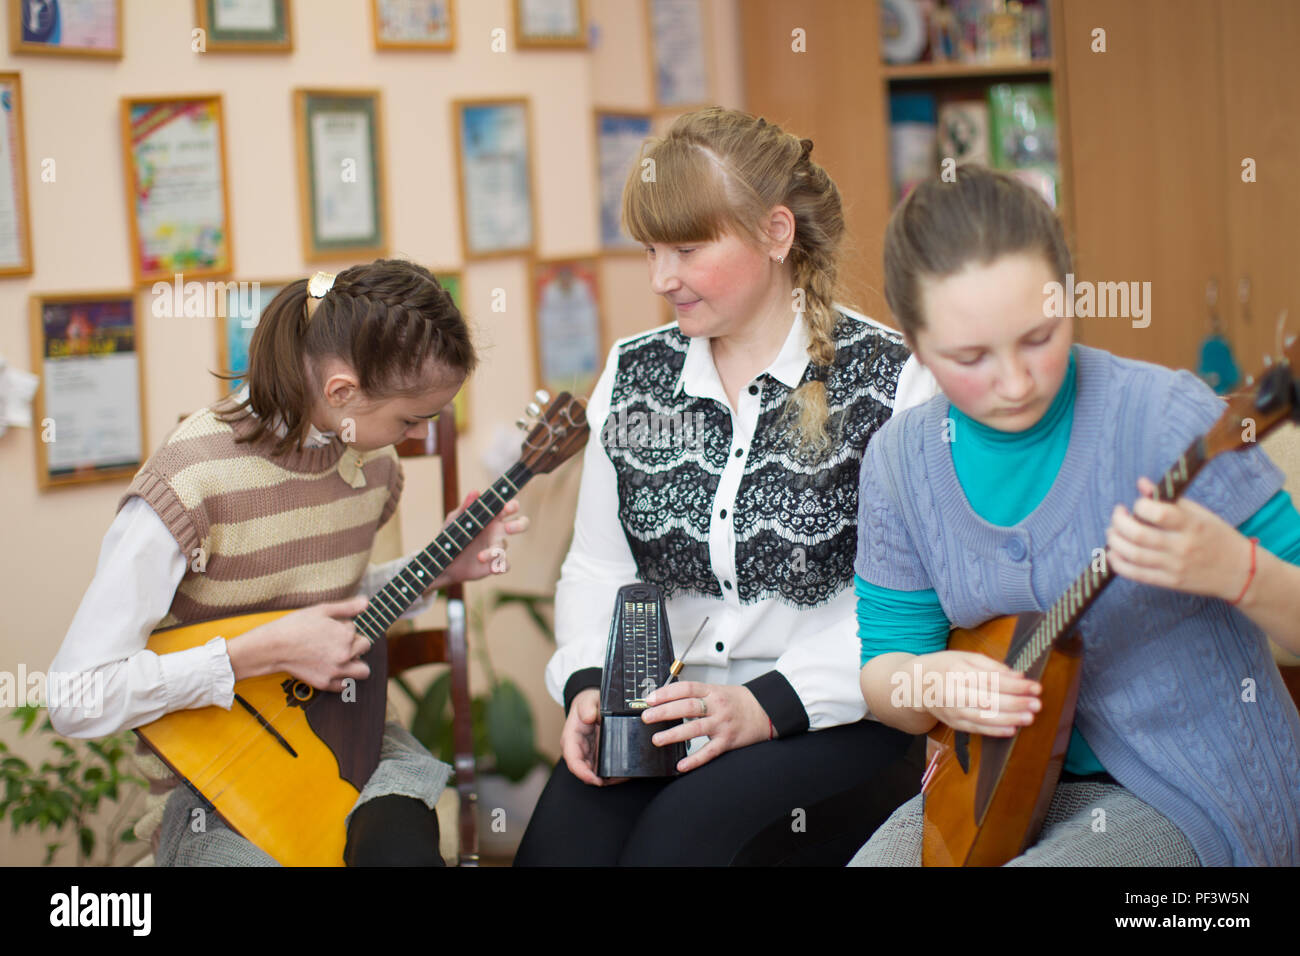 Belarus, Gomel, April 24, 2018. Children's music school. Open music lesson. The teacher of music teaches to play girls on a balalaika - Stock Image